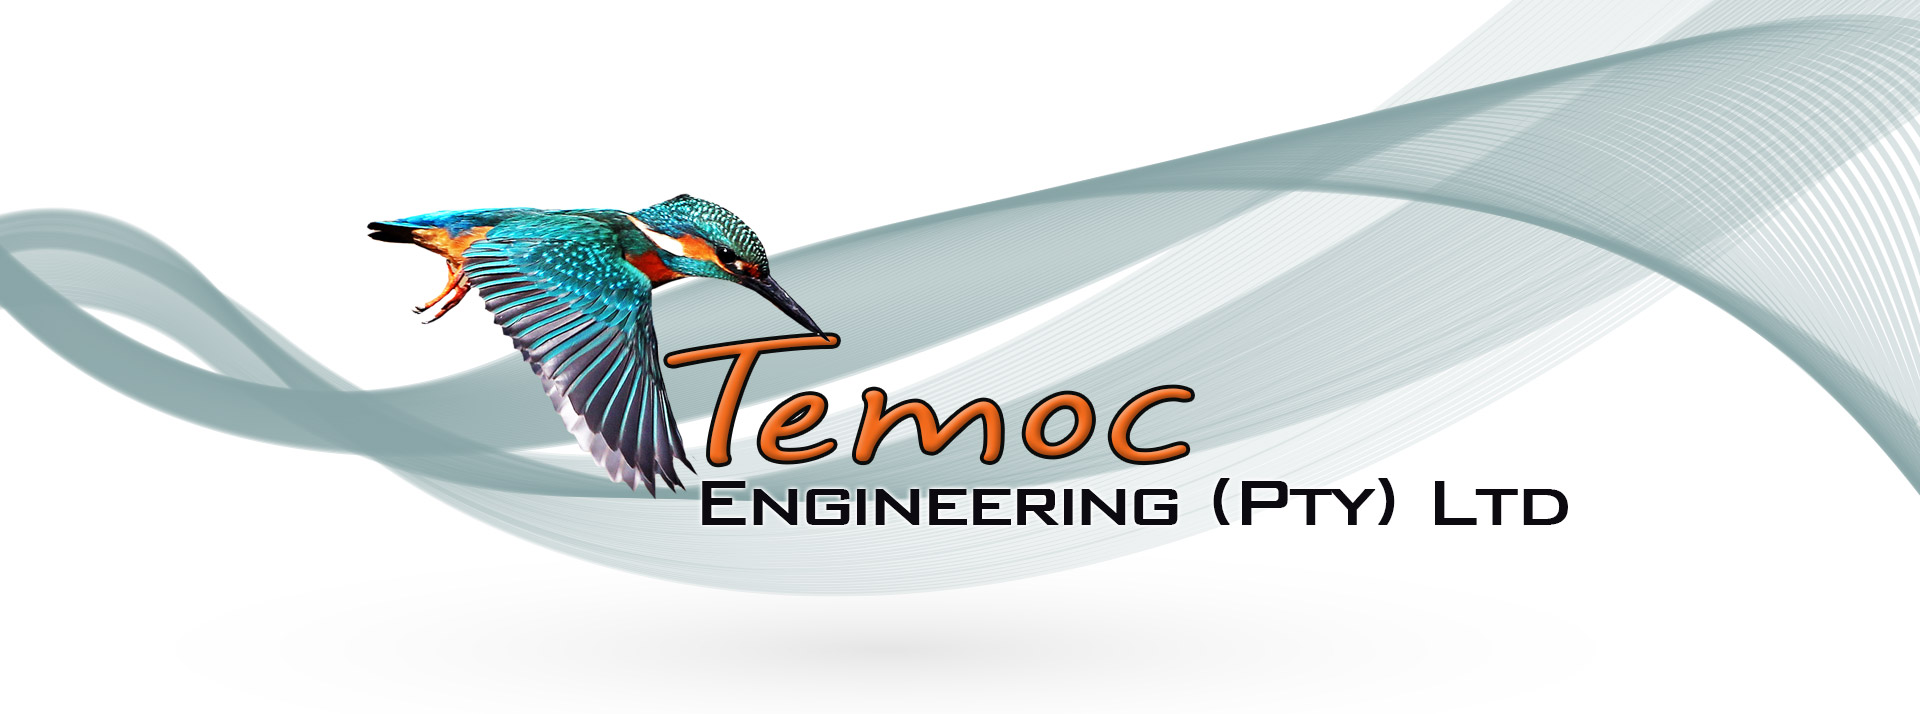 images/2017/home/temoc-engineering-homepage-banner-new.jpg